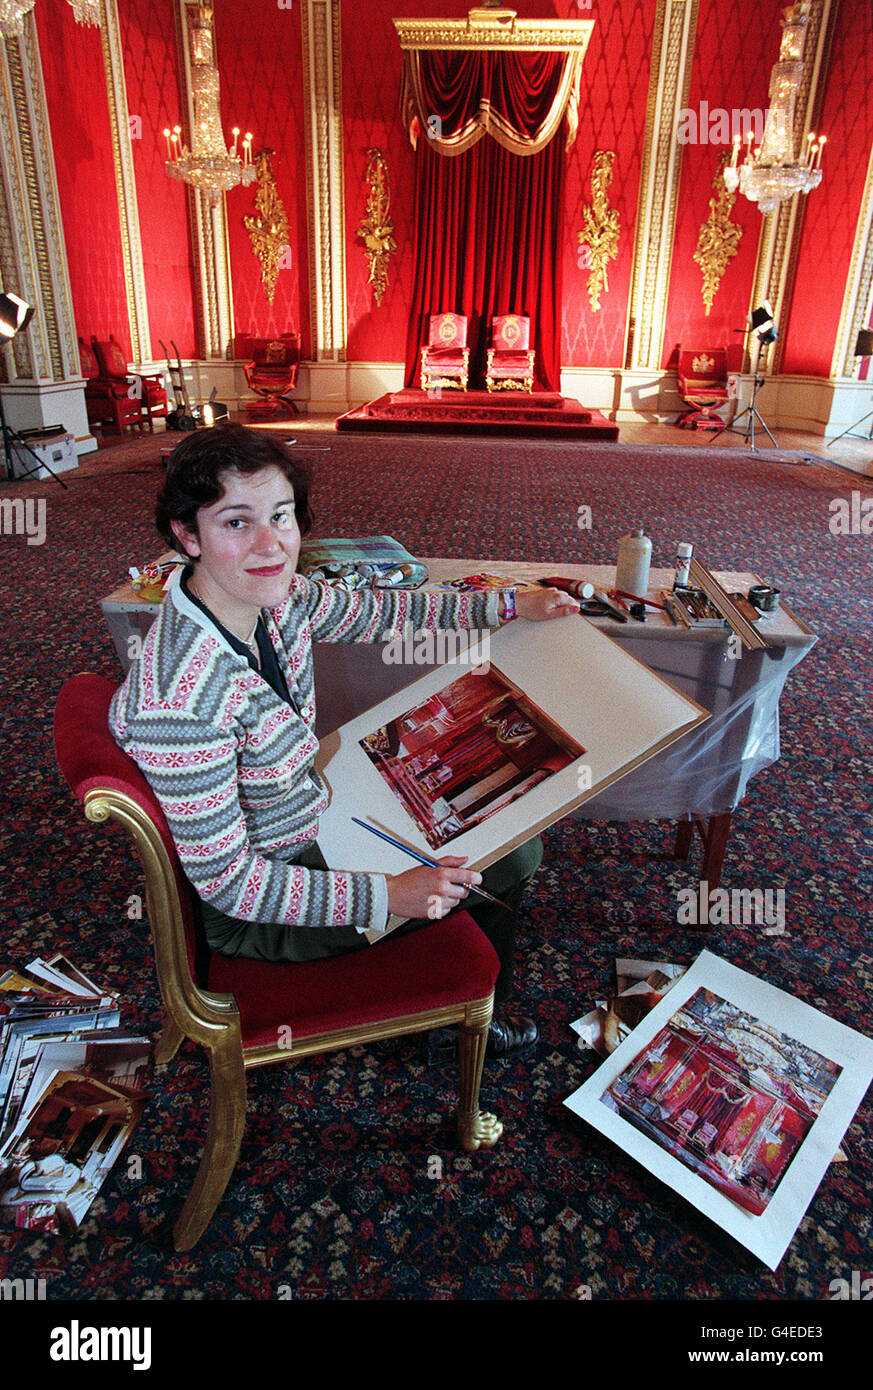 ROYAL poster artist Stock Photo